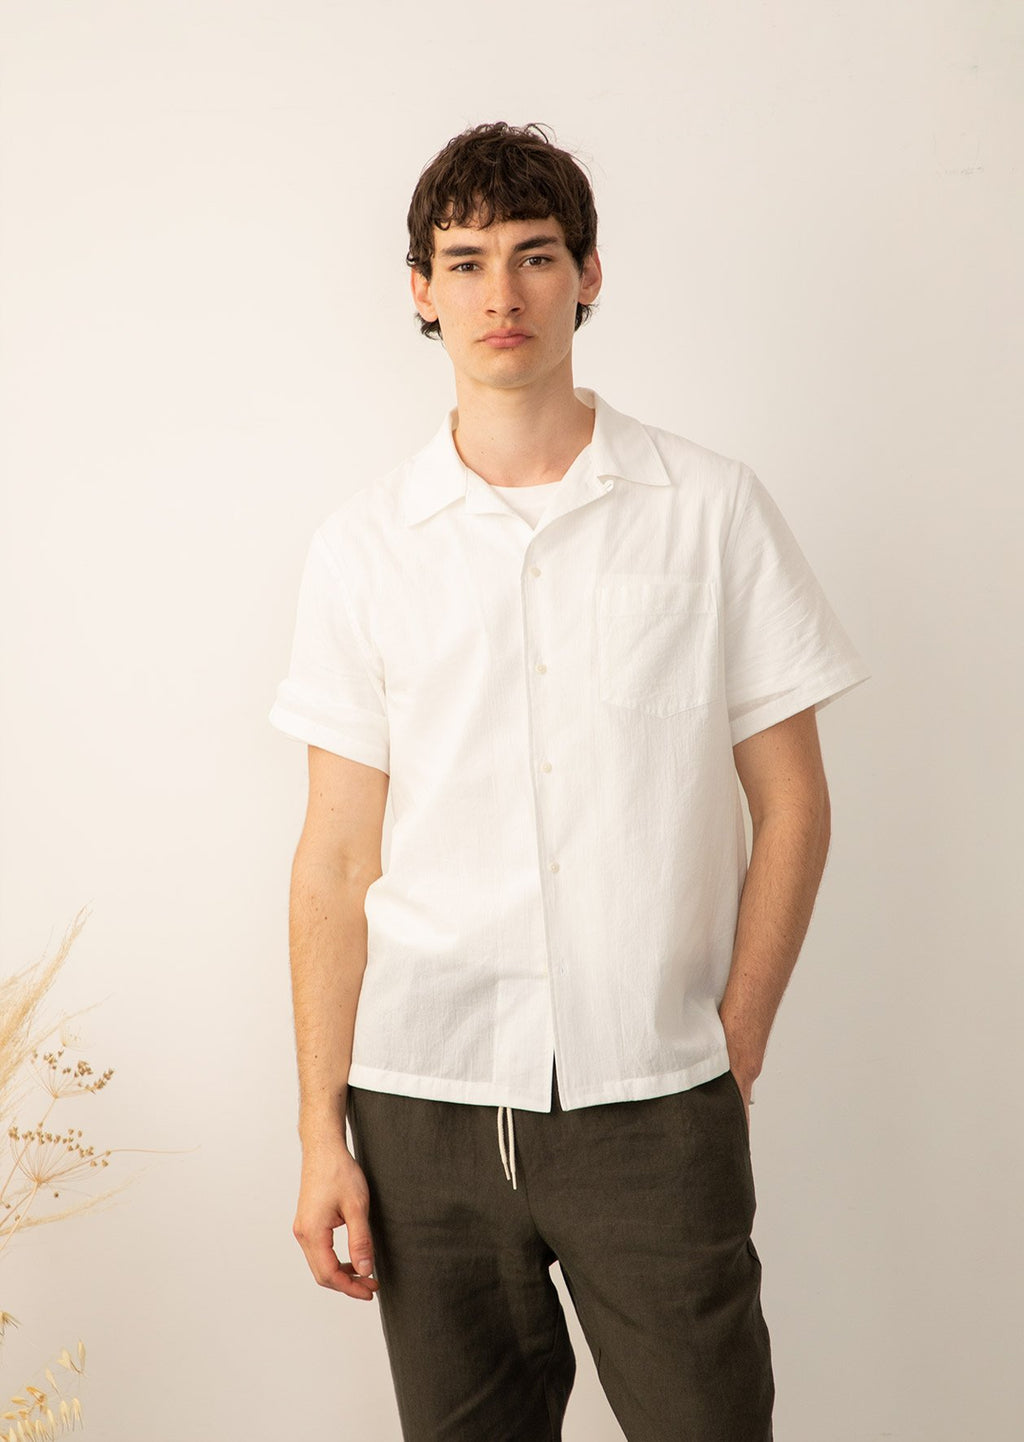 De-Bonne-Facture-Short-Sleeve-Button-Down-White